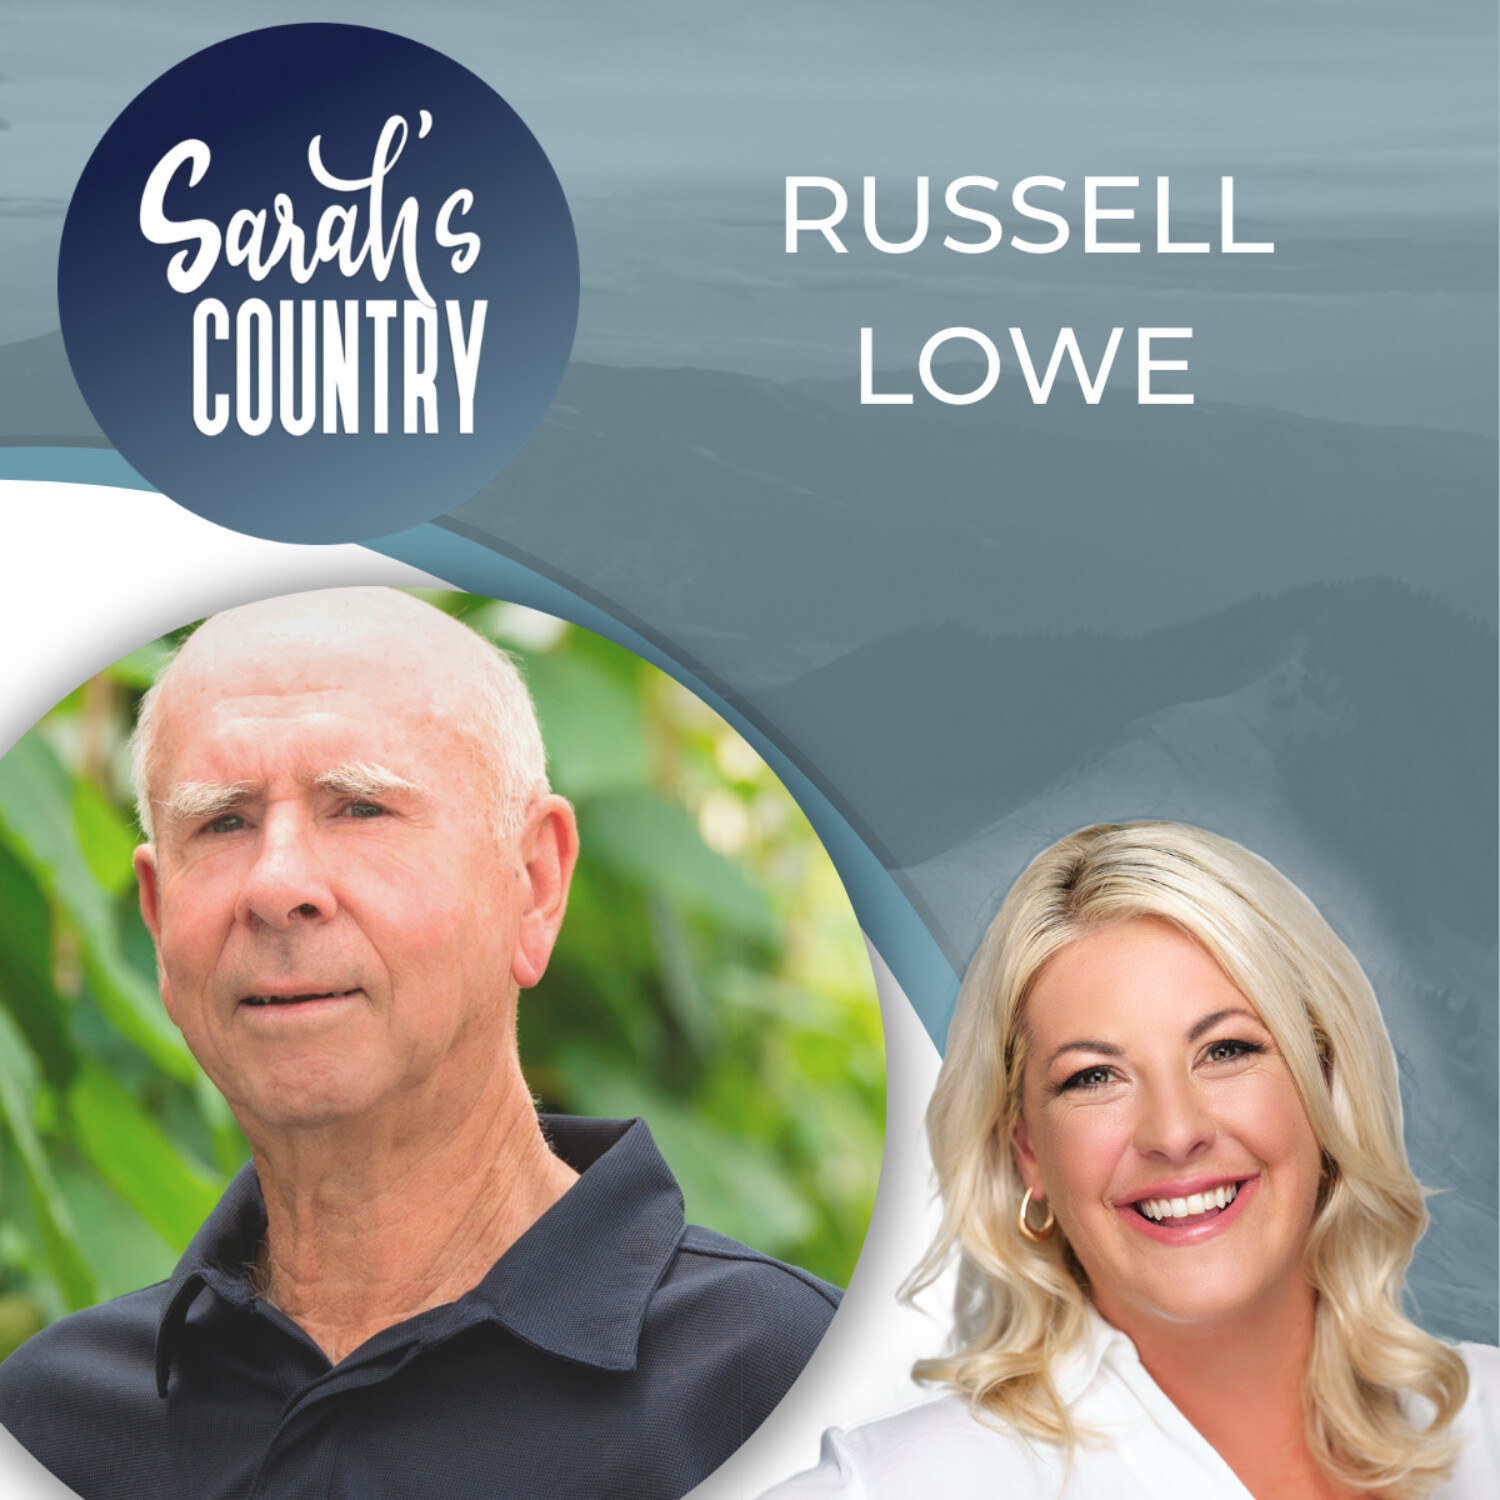 """A life's work of plant breeding"" with Russell Lowe"